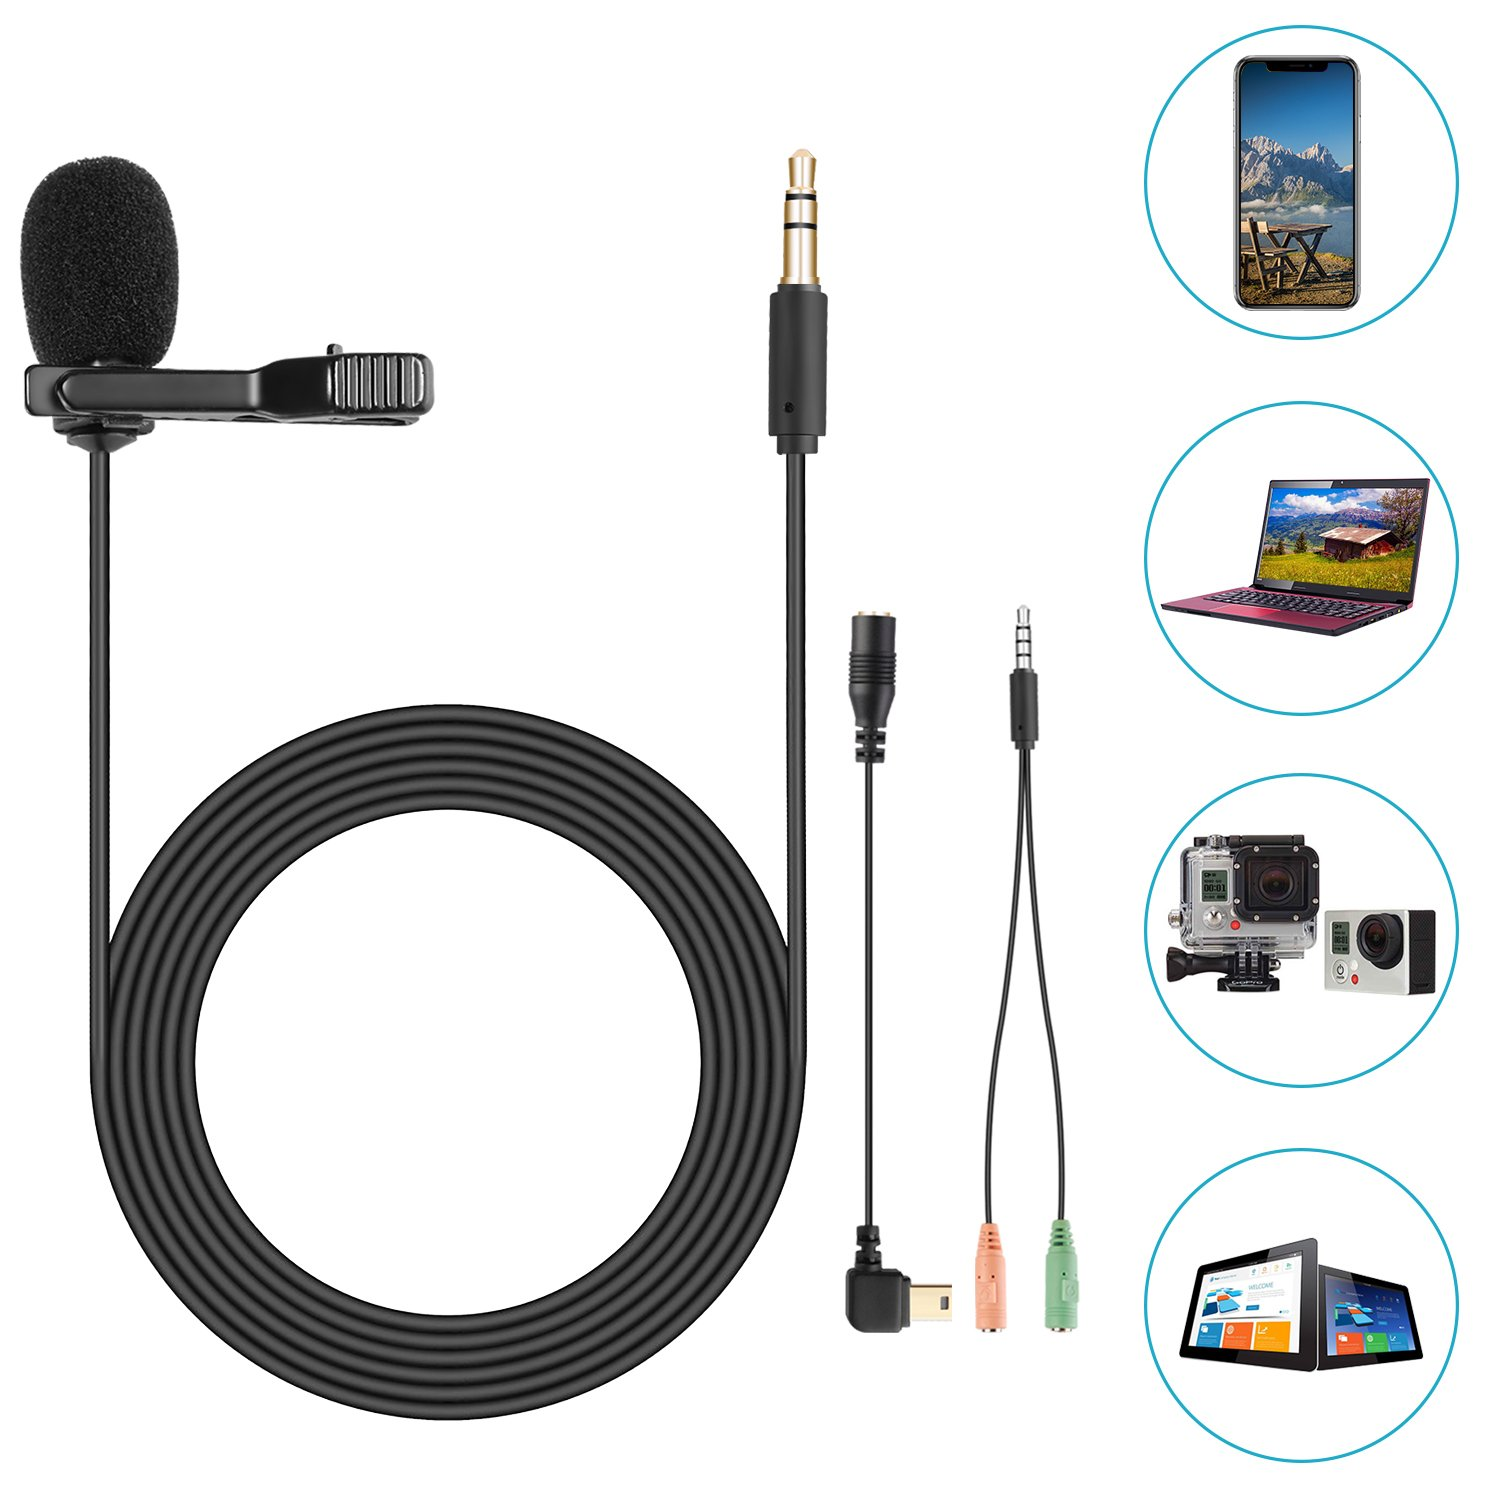 Neewer Lavalier Lapel Microphone, Compatible with GoPro Hero 4 3+ 3 2 1/Hero Session,iPhone, Smartphone and PC for Ultra-Crisp Sound Capture with Phone Adapter and Wind Muff C6 feet/1.8 meters 40093445